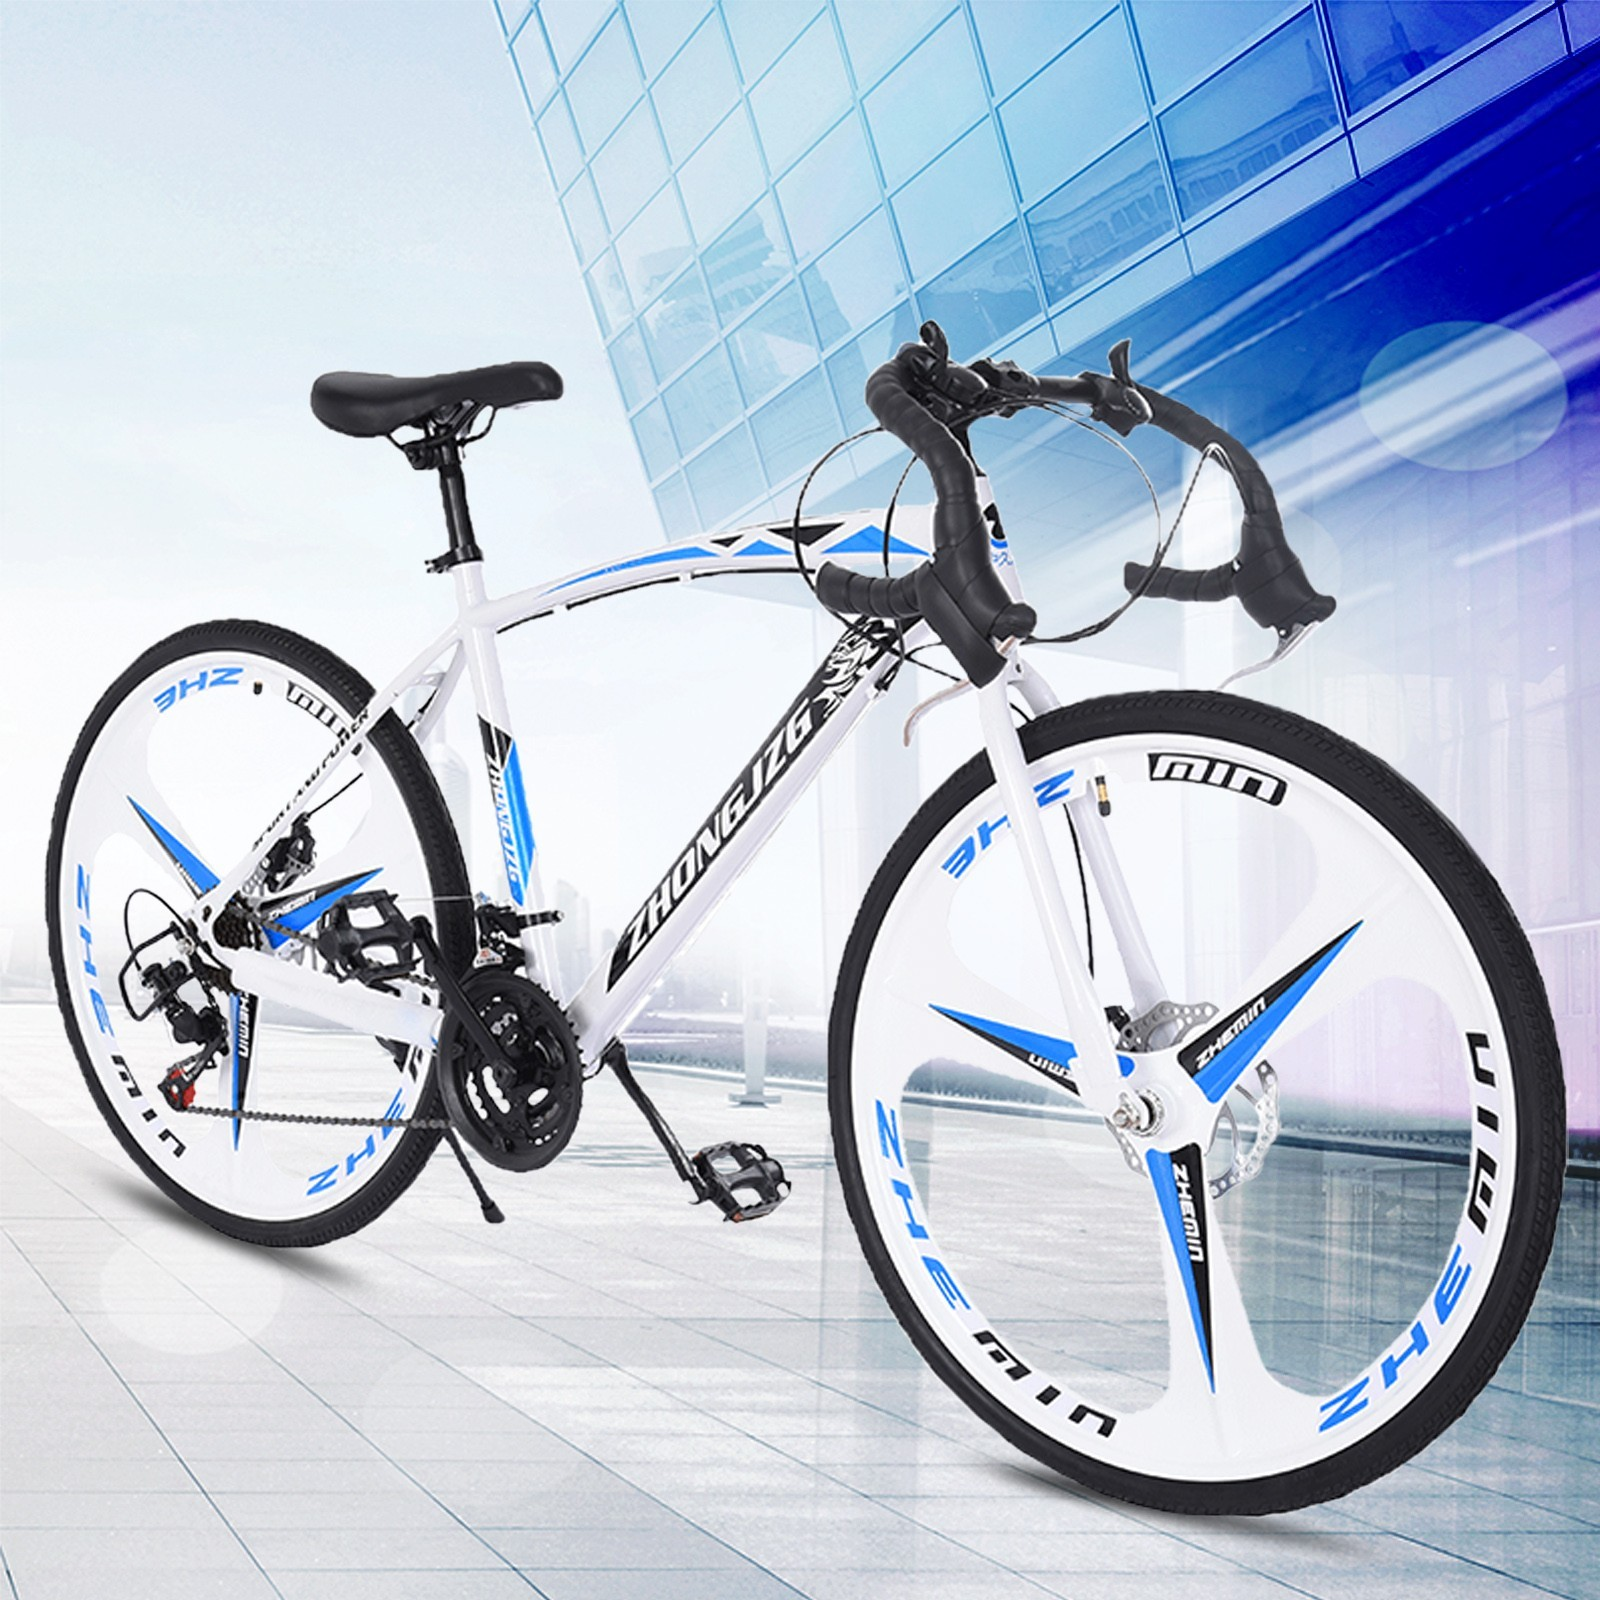 Details about  /Road Bike 21 Speed Mens Bikes 700C wheels Bicycle Disc Brakes 26in Upgraded